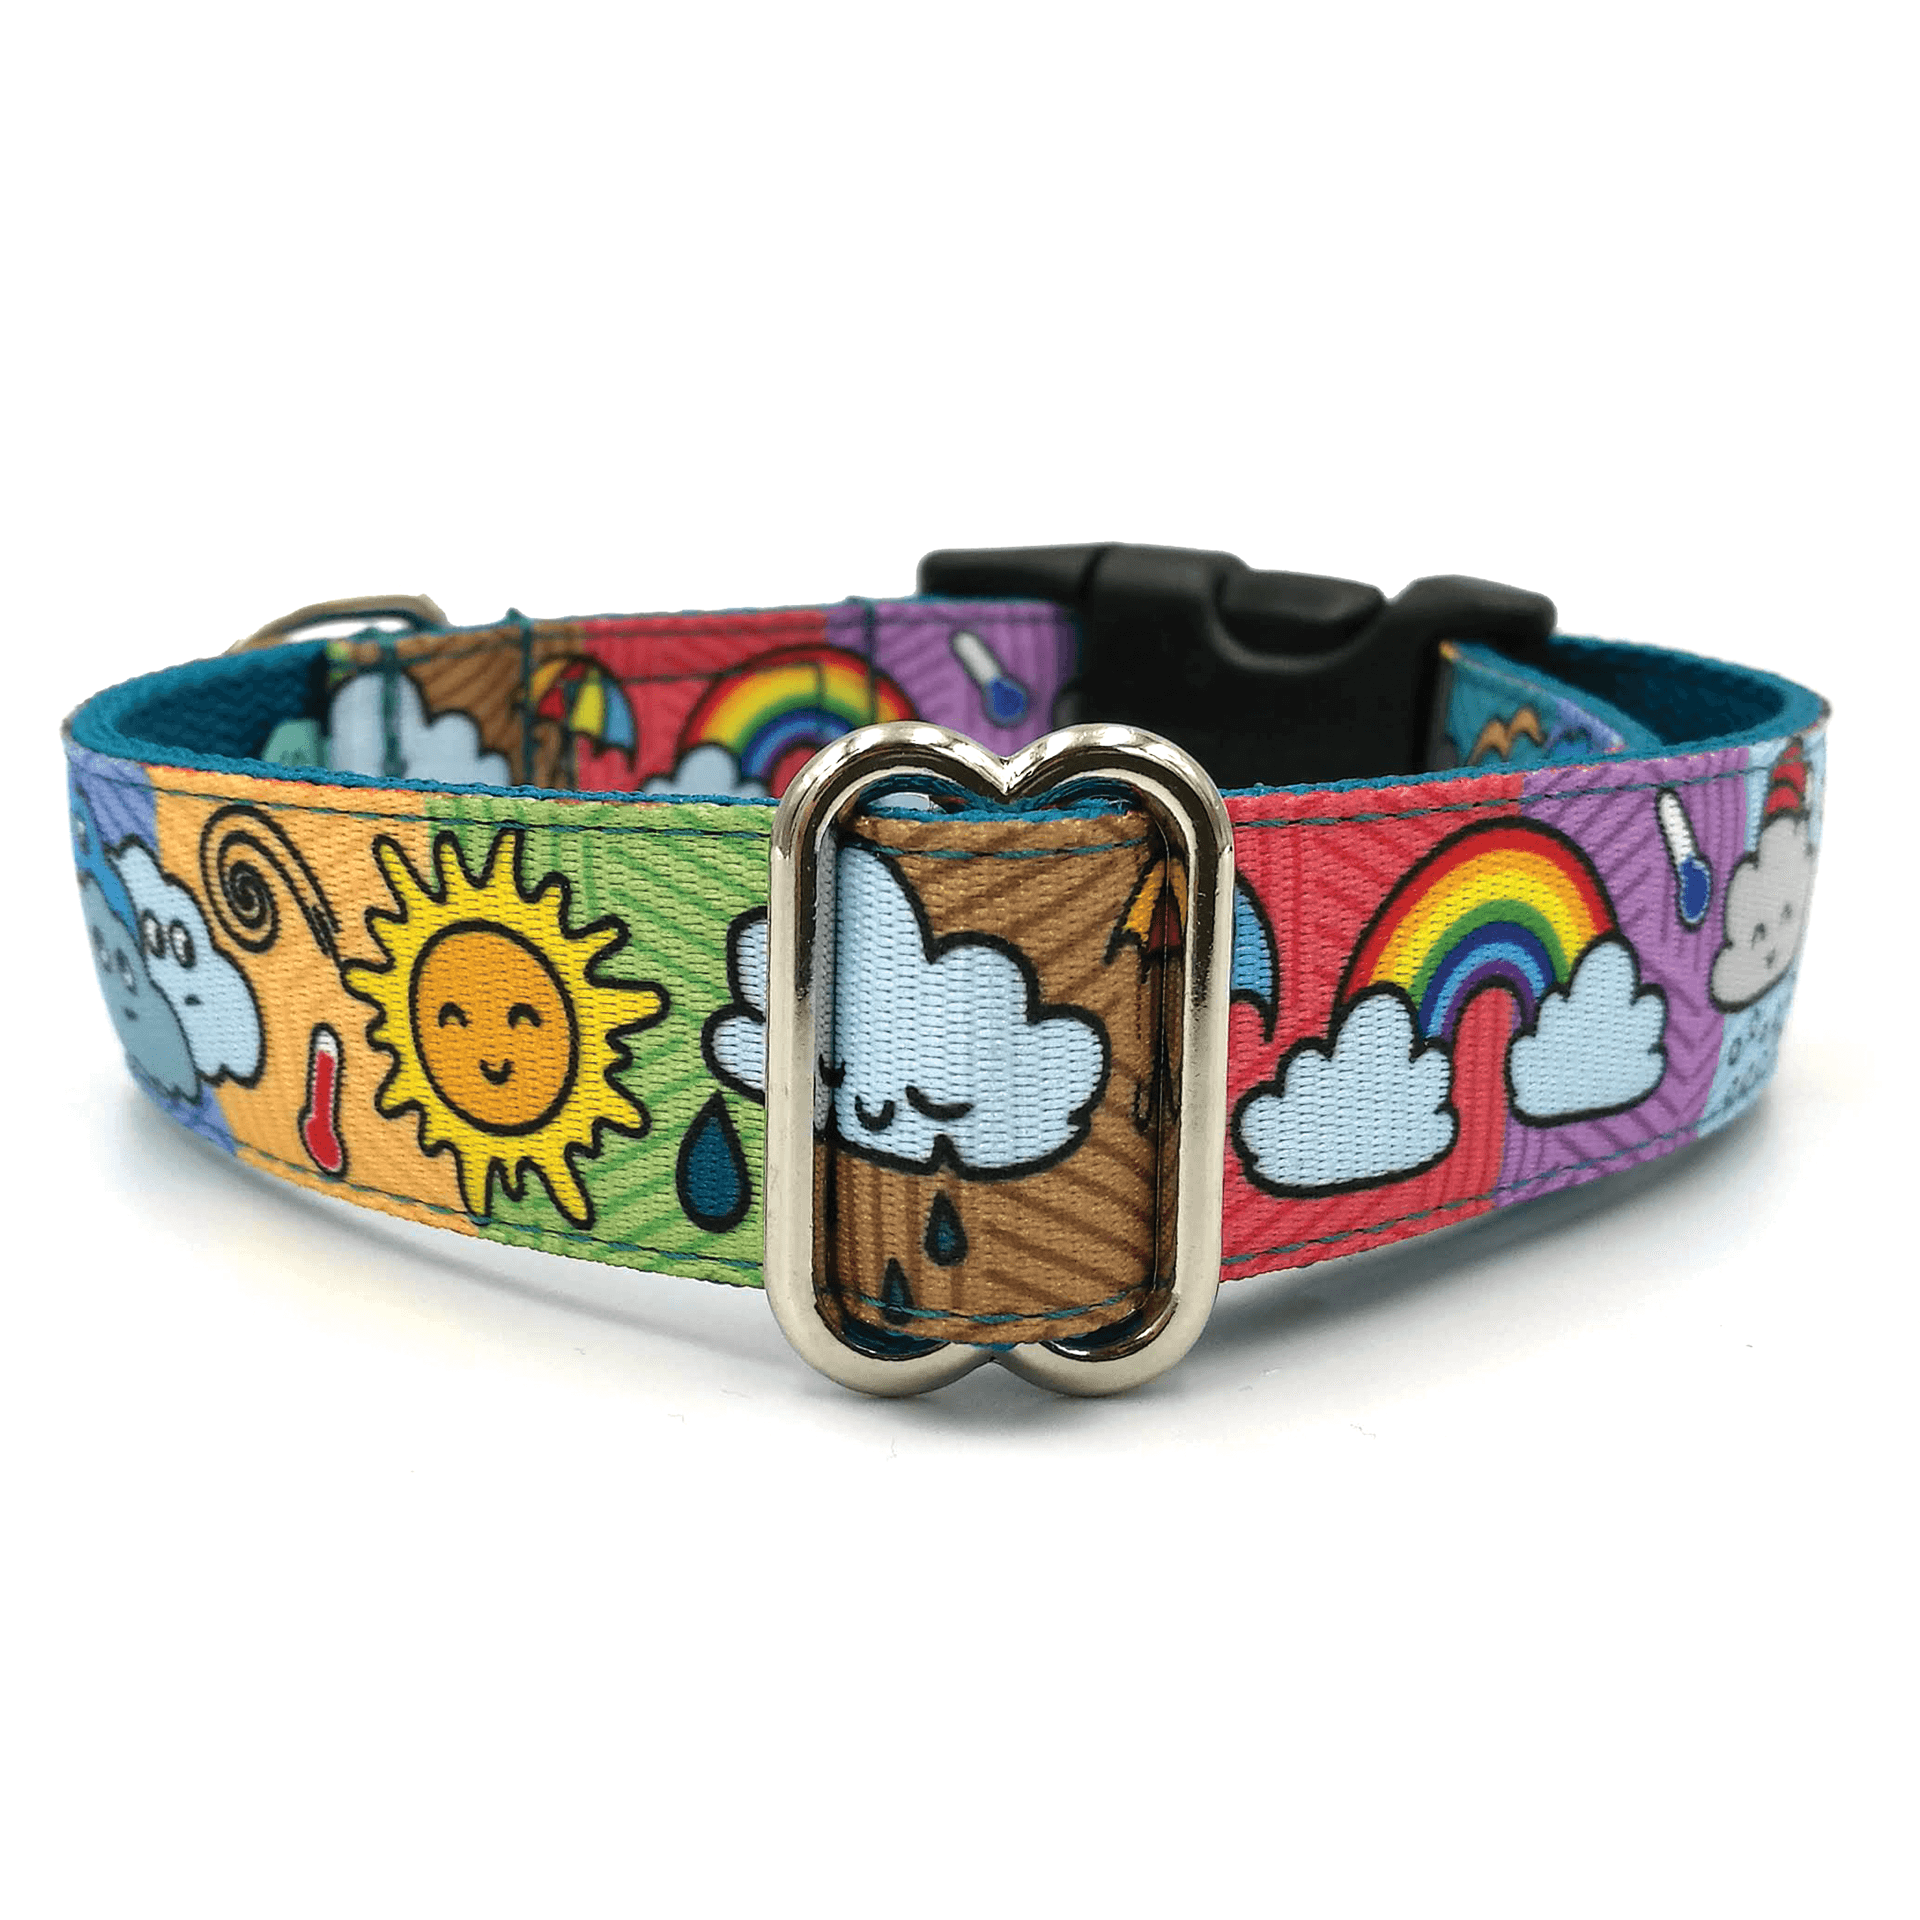 Changeable pattern dog collar